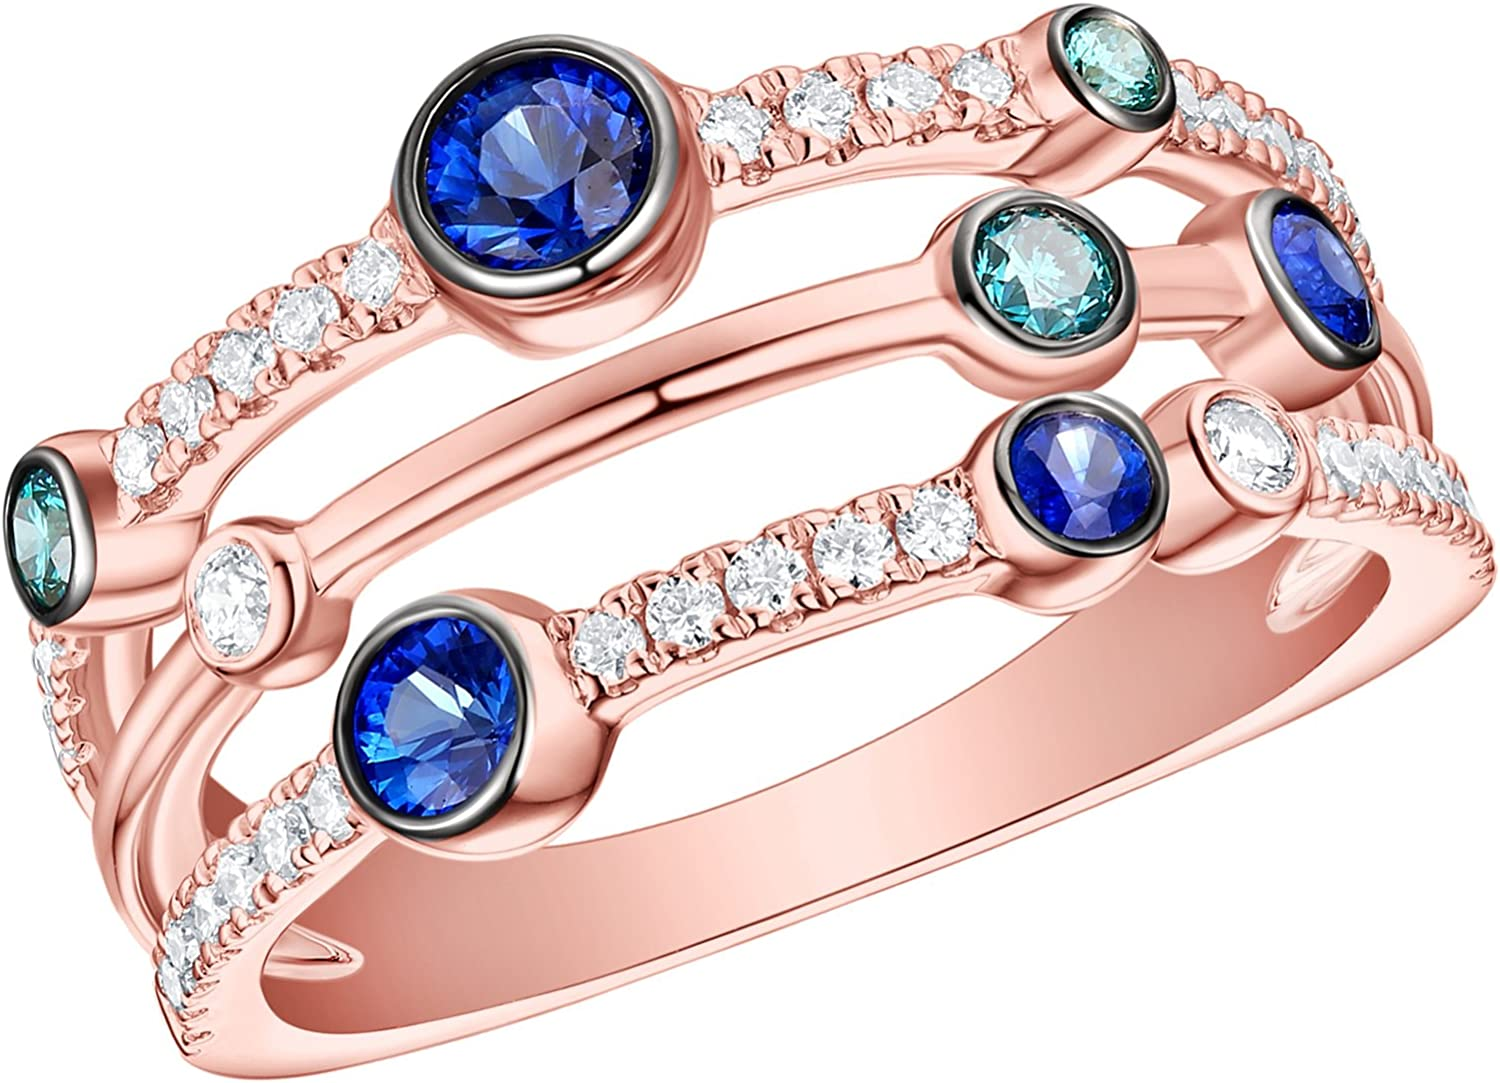 Prism Jewel 0.29 Carat Round Blue /& White Diamond Delicate Twisted Ring